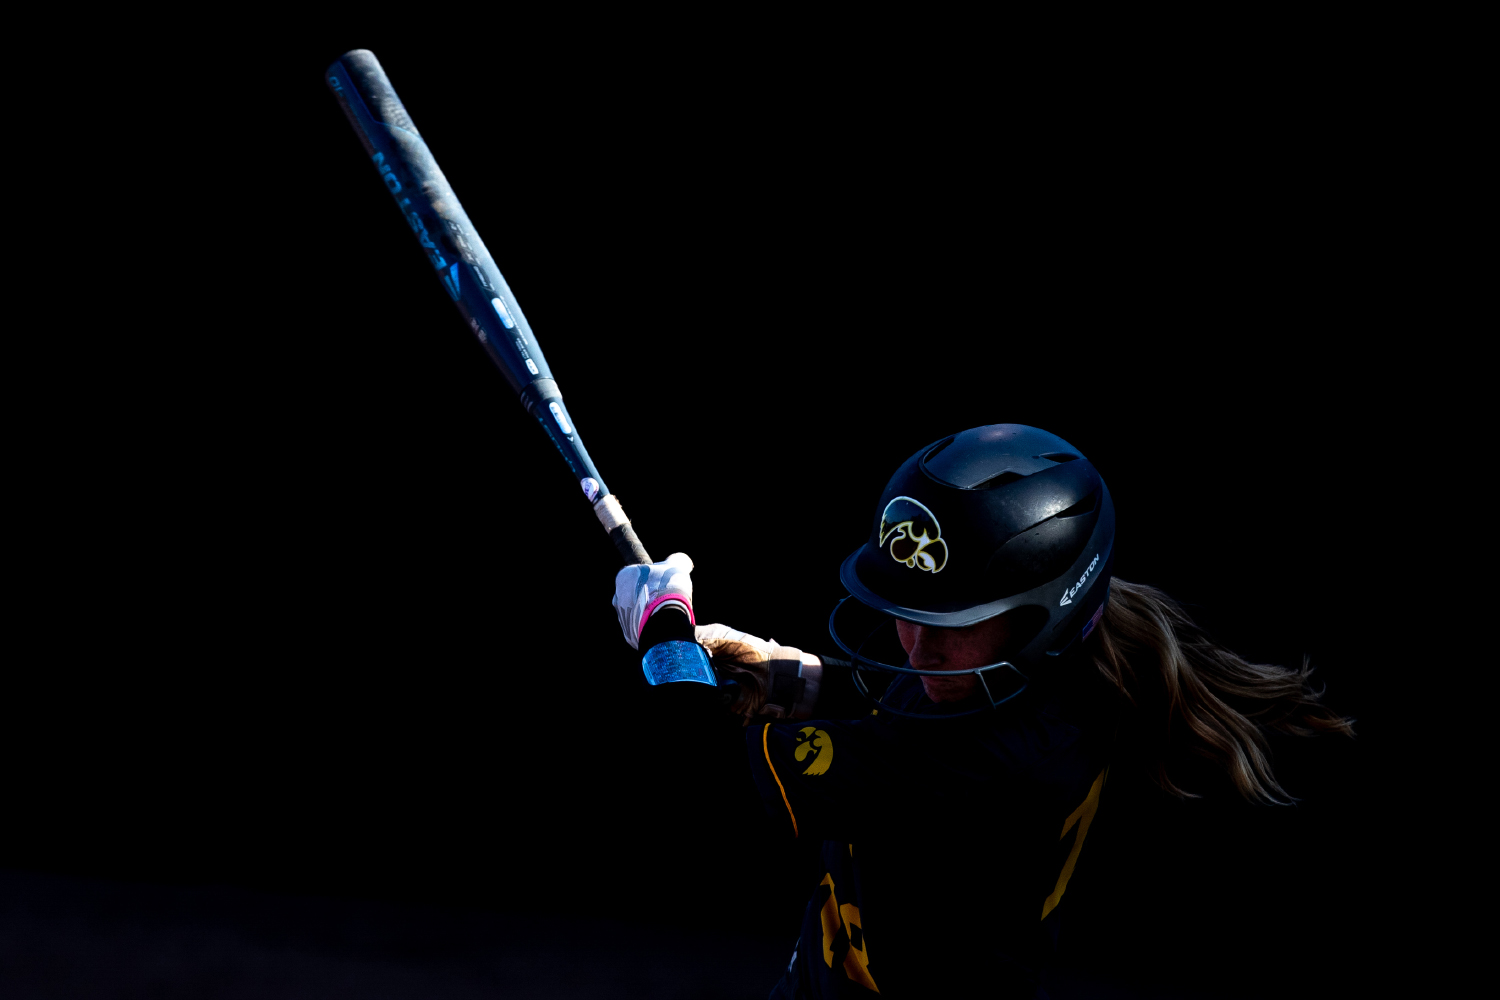 Iowa utility player Ashley Hamilton misses the ball during the game against Nebraska at the Bob Pearl Softball Field on Wednesday, April 24, 2019. The Hawkeyes were defeated 7-5 by the Huskers.